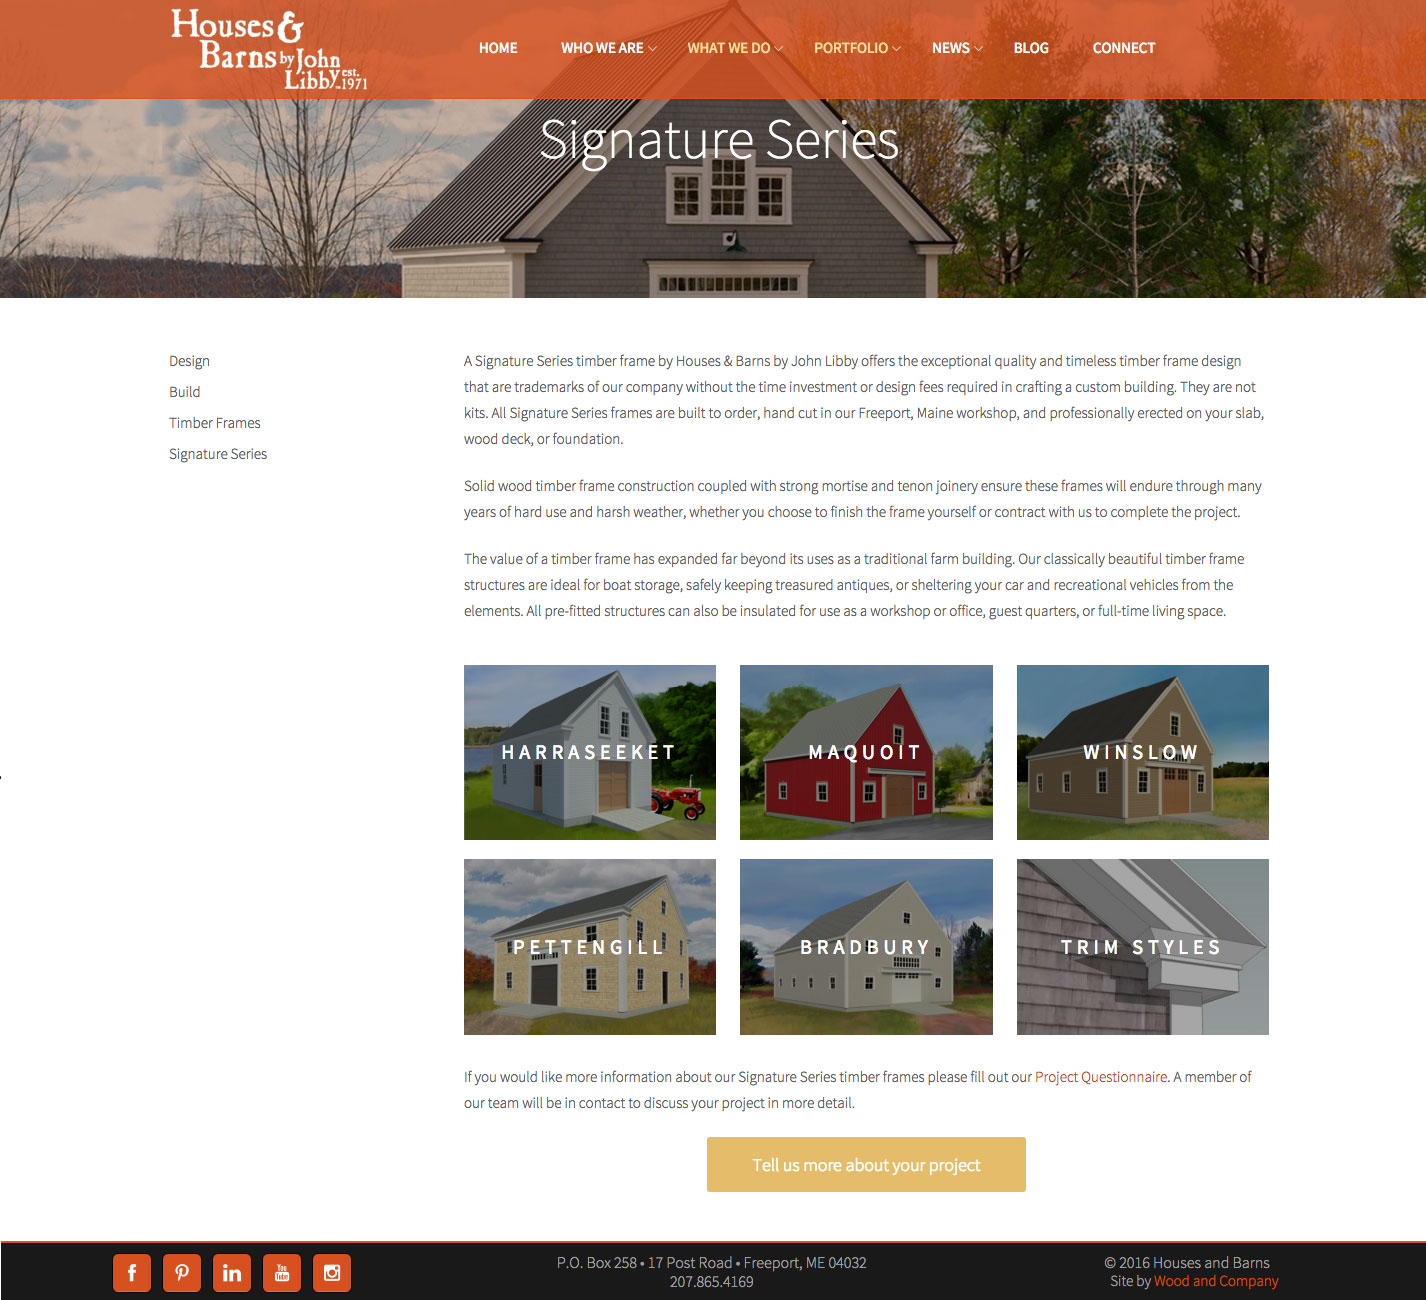 Houses & Barns Signature Series